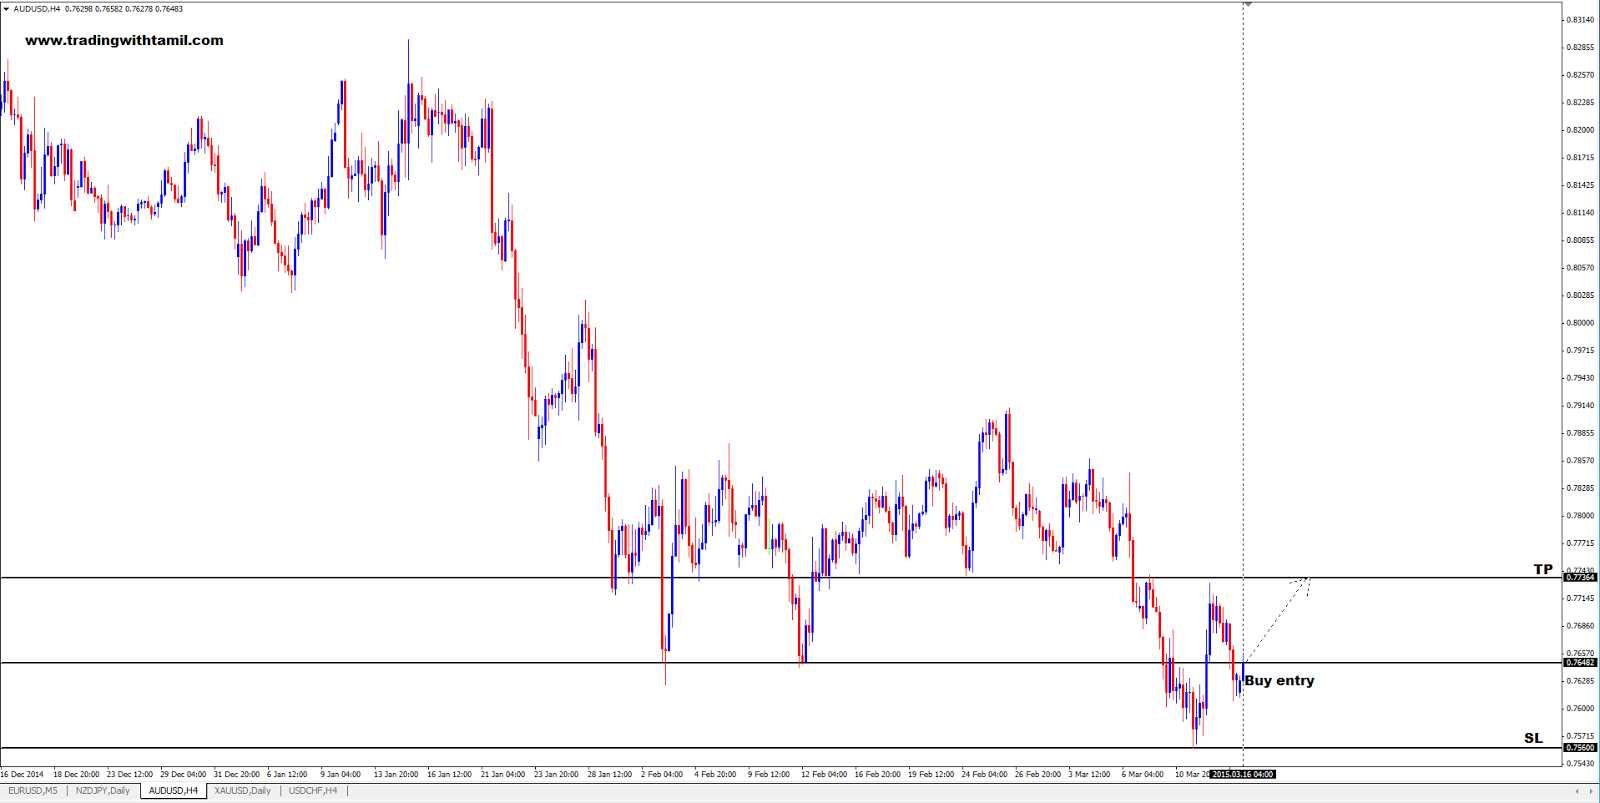 Q-FOREX LIVE CHALLENGING SIGNAL 16 Mar 2015 – Buy Aud/Usd